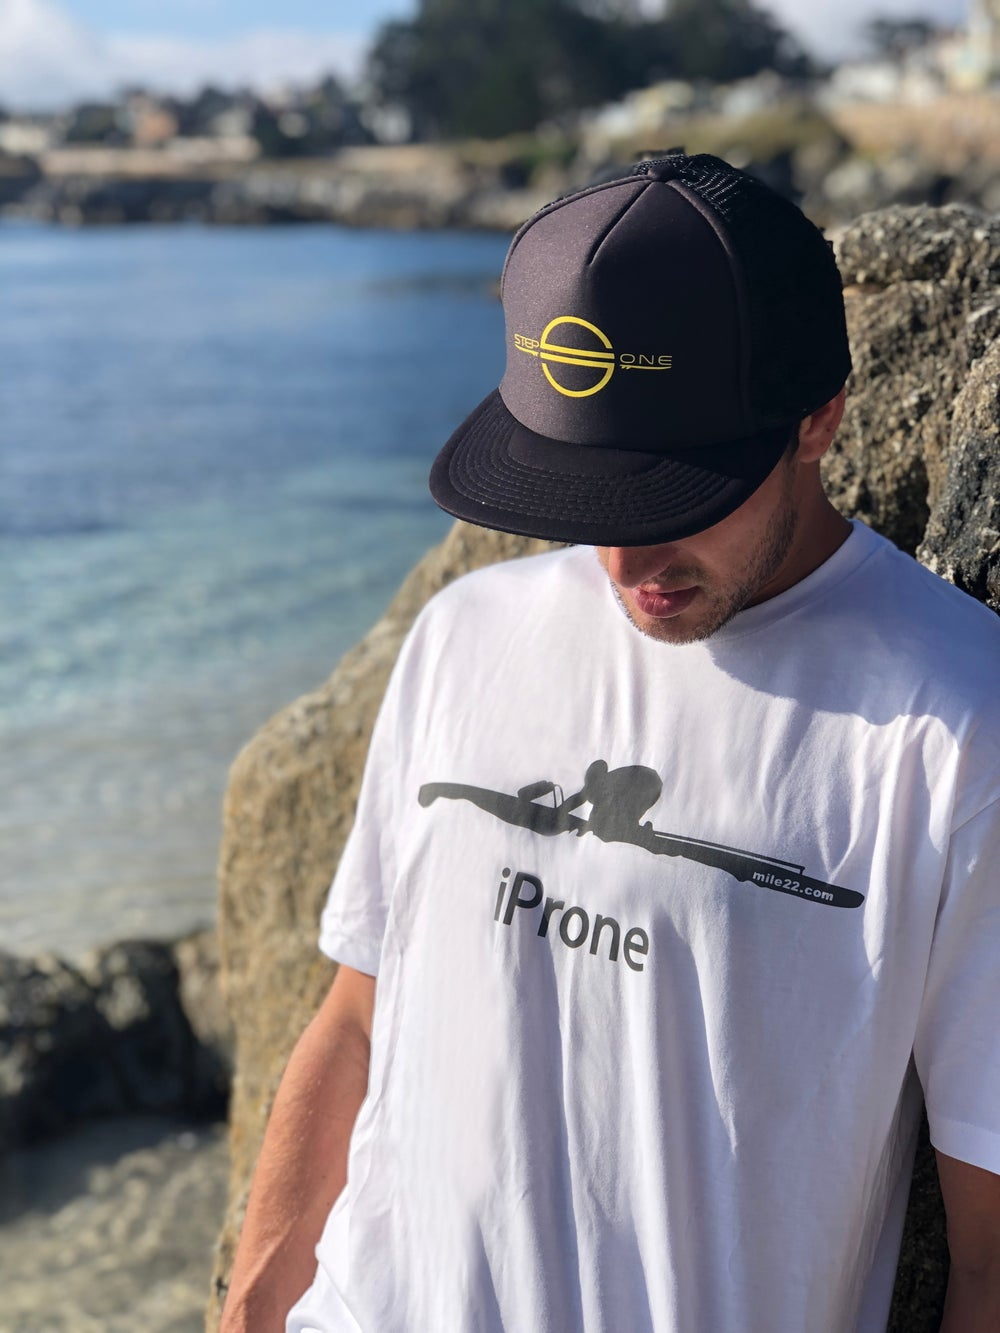 Image of iProne T-shirt